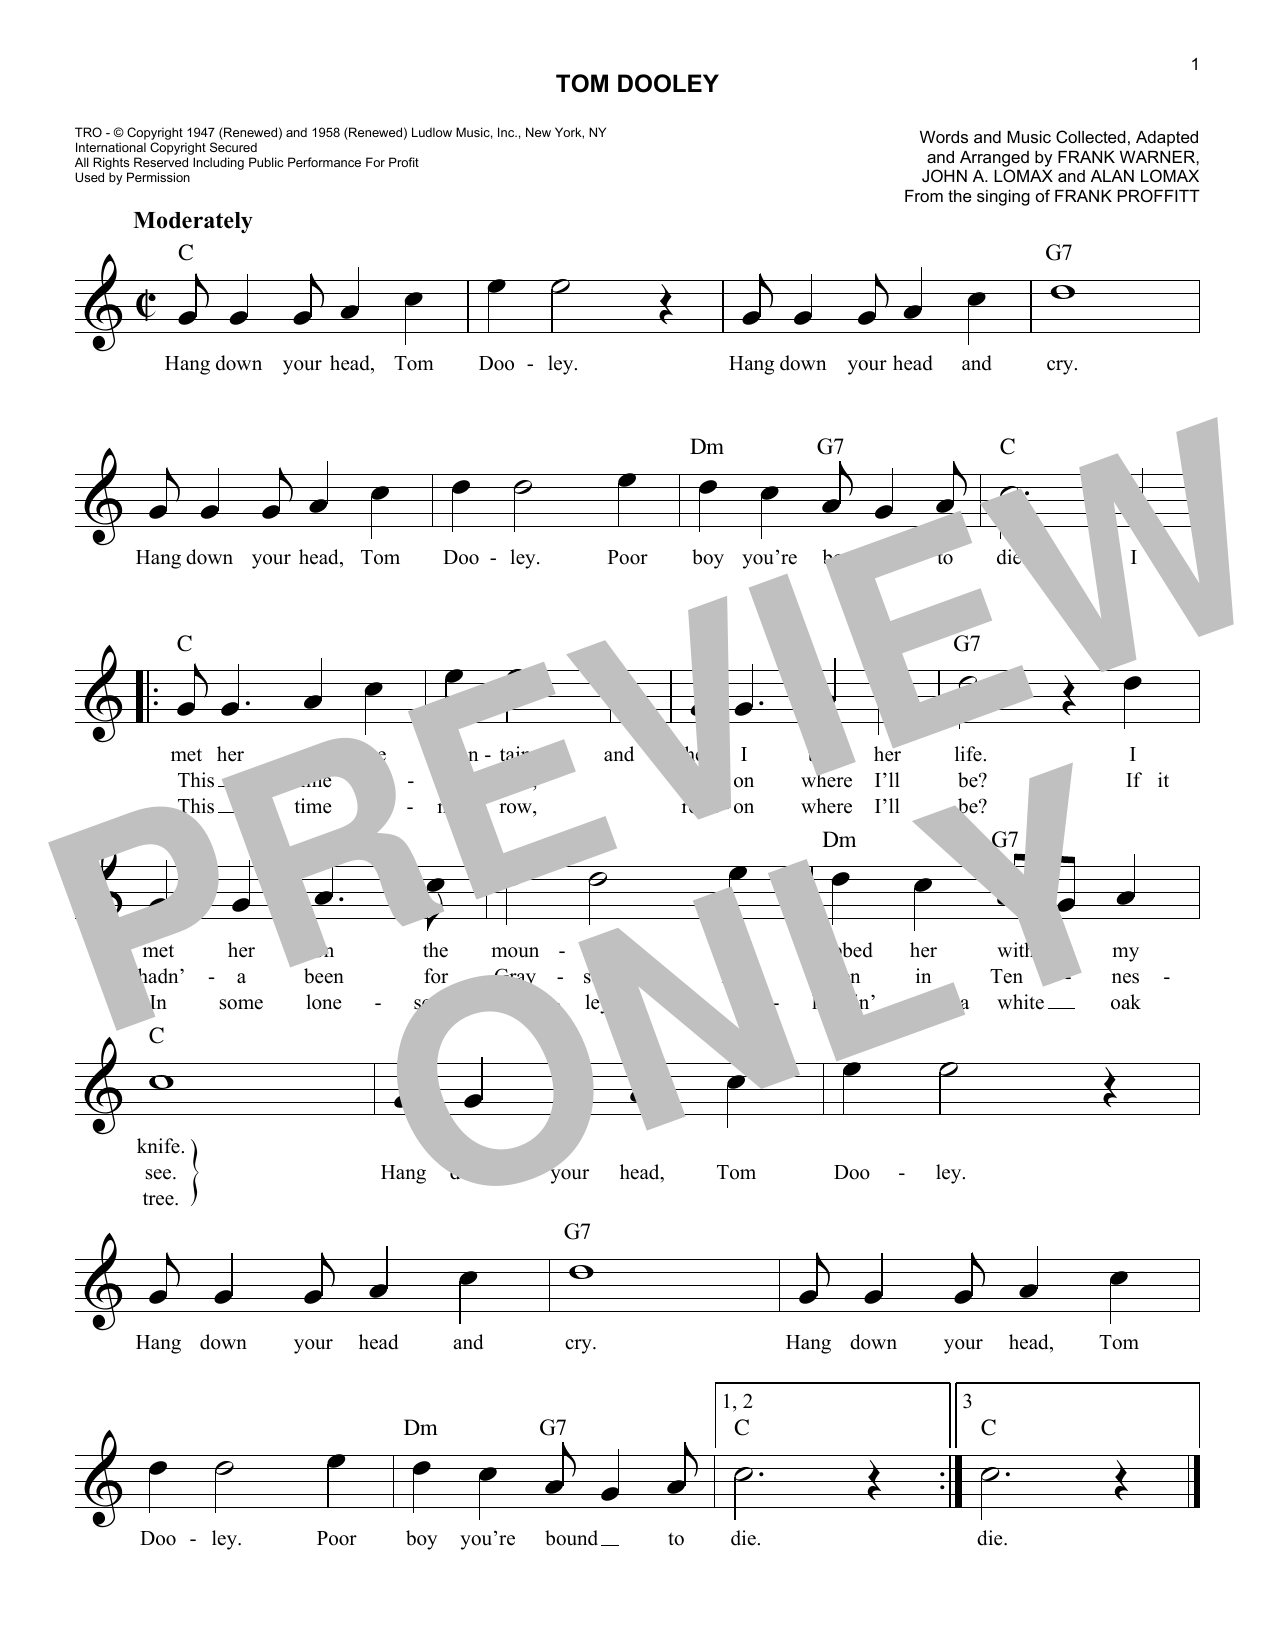 Tom Dooley Sheet Music